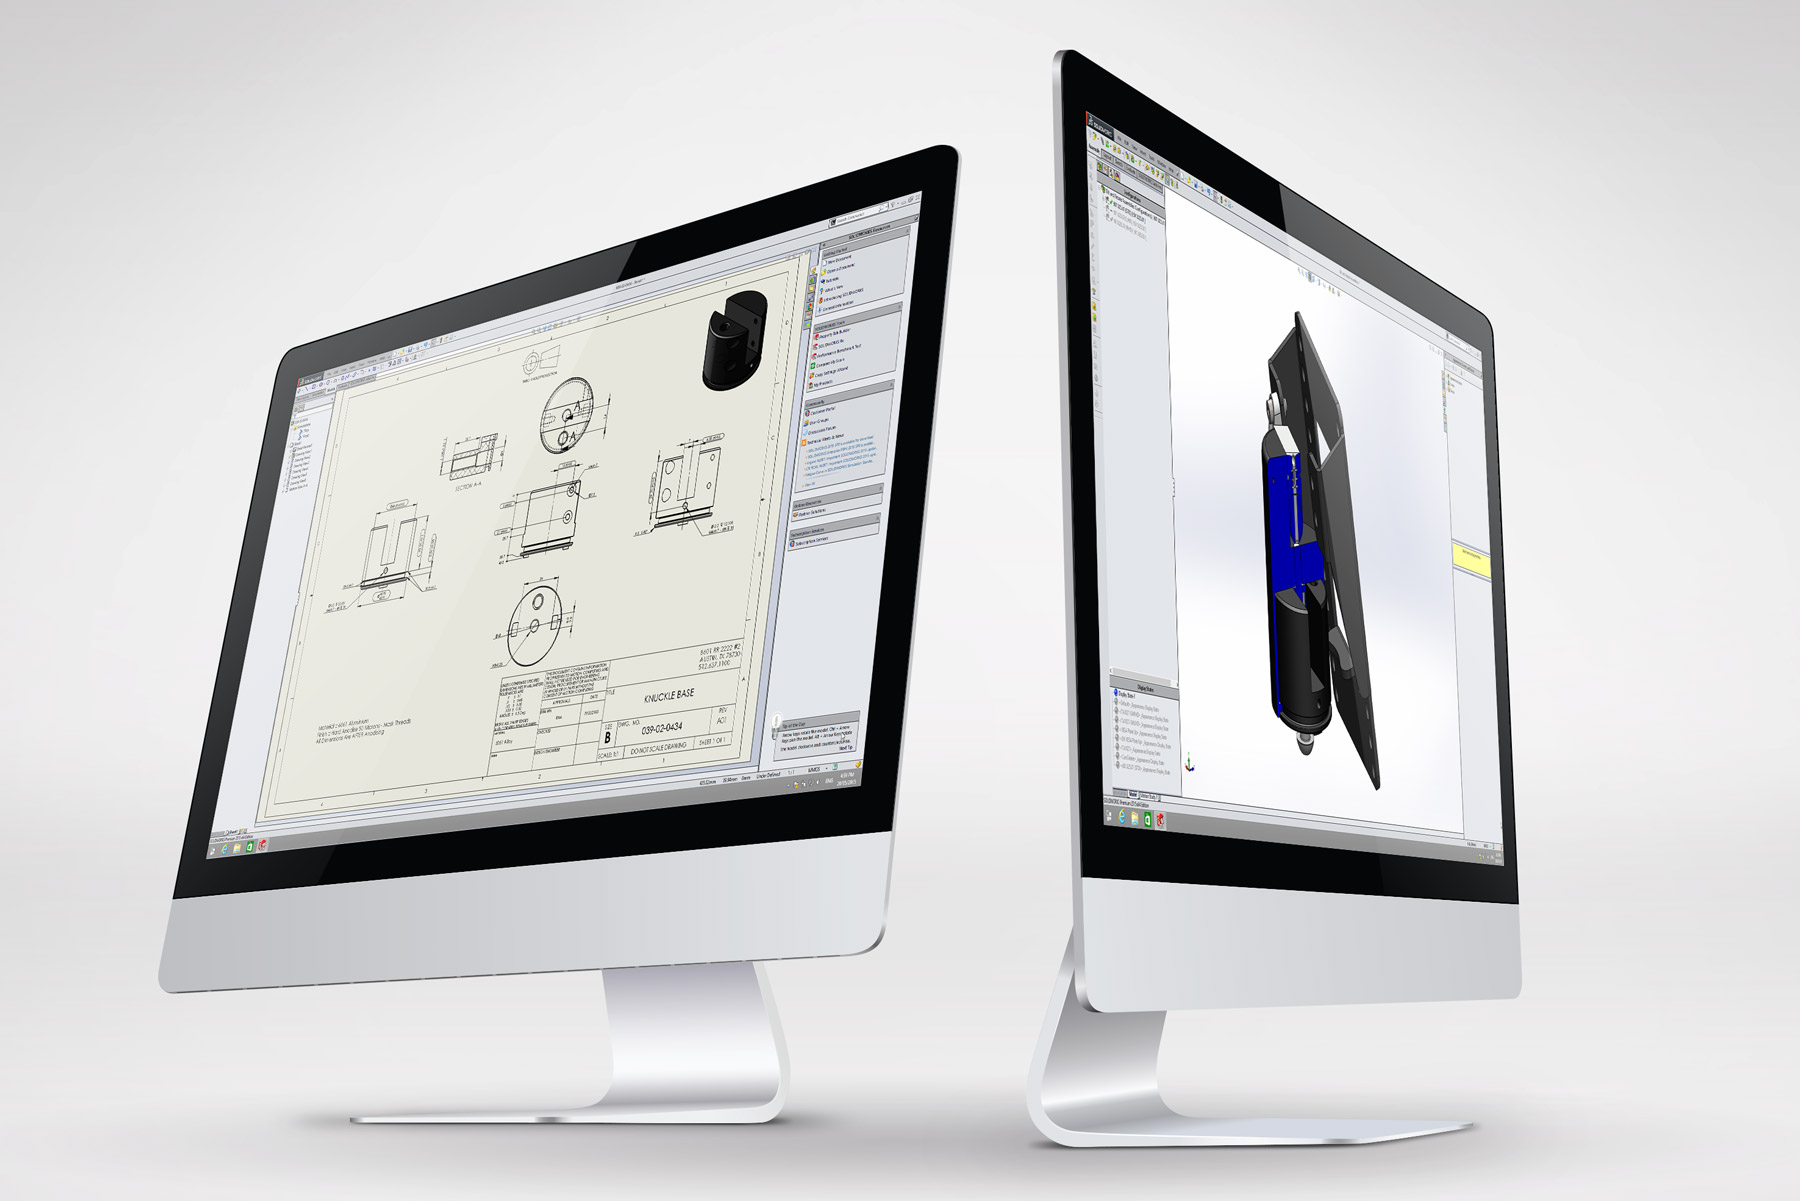 contract-cad-design-services